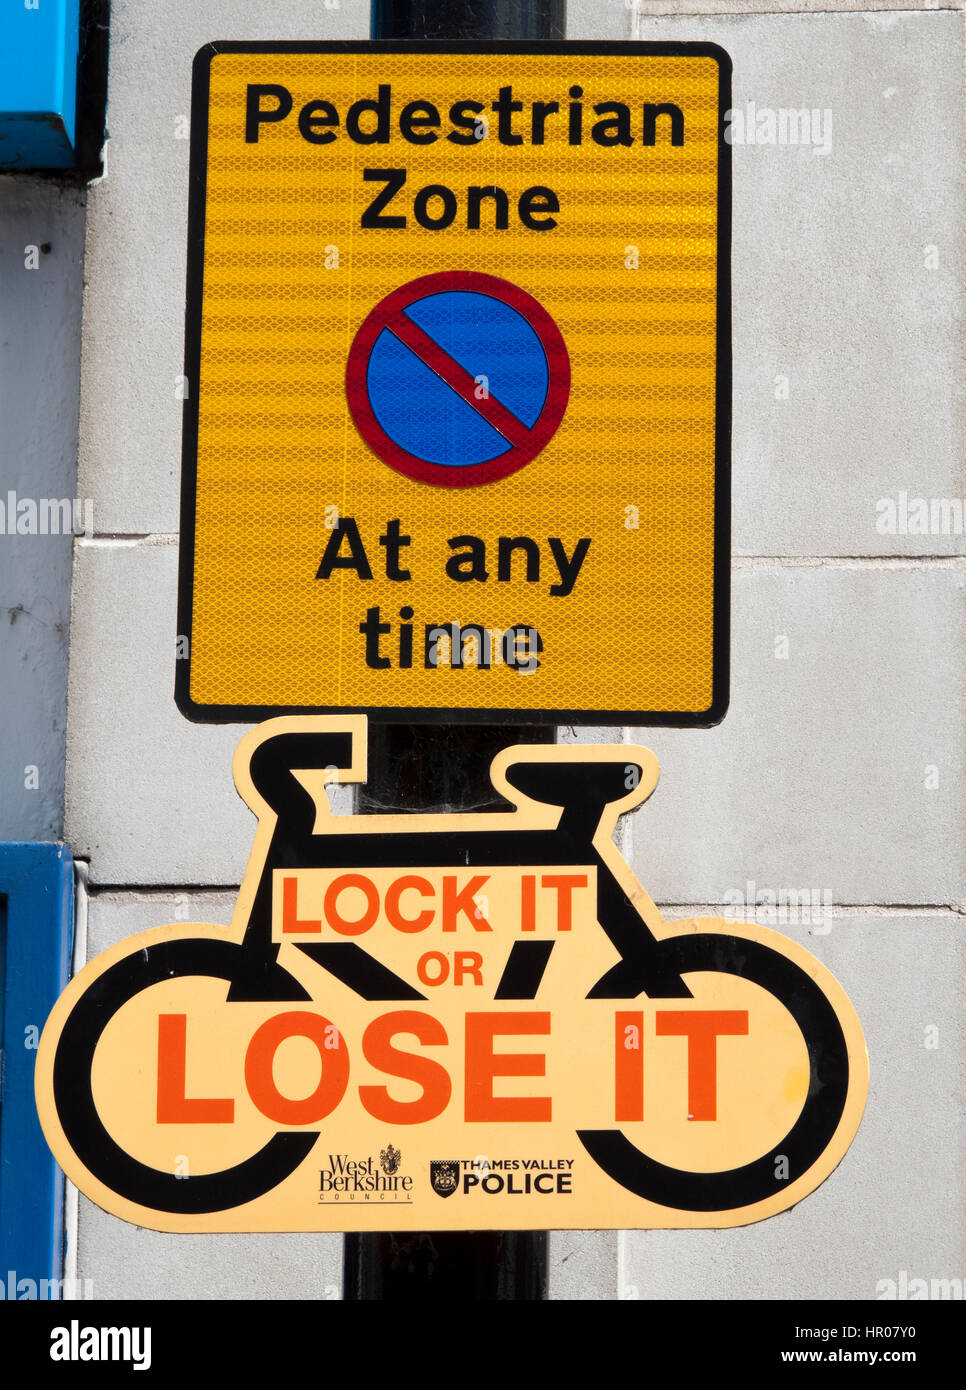 Public information pedestrian sign and Thames Valley Police pushbike lock it sign - Stock Image